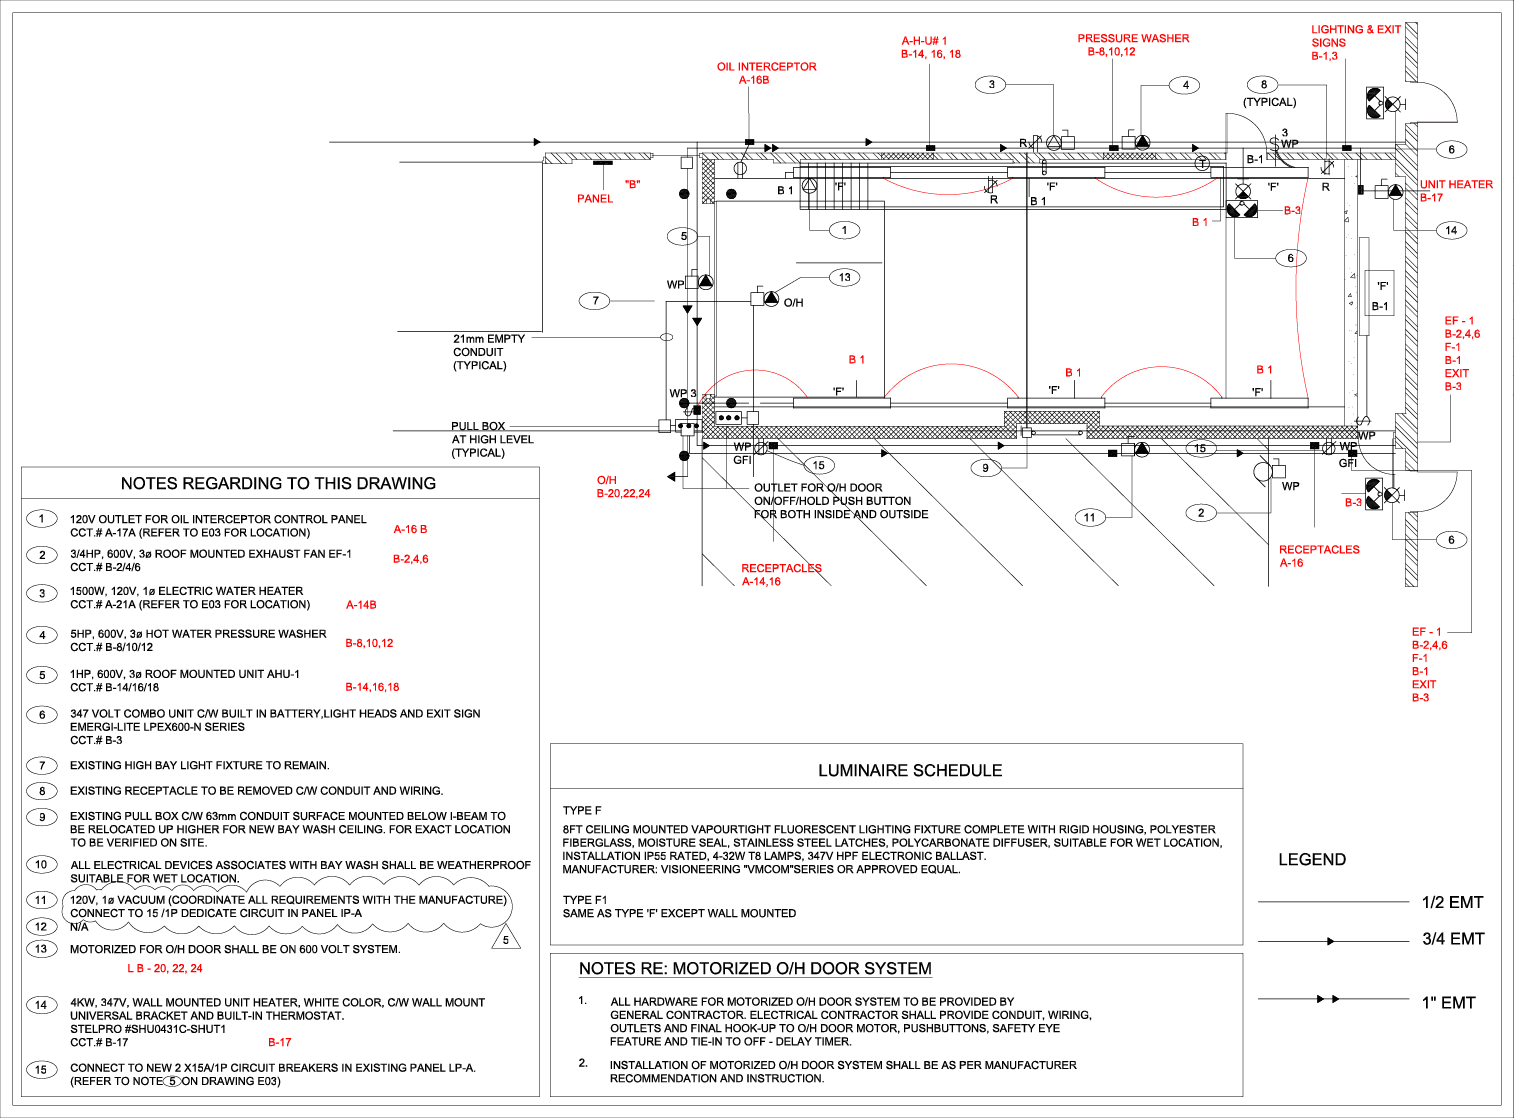 Toronto CAD Services - AutoCAD Drafting - Technical Drawings